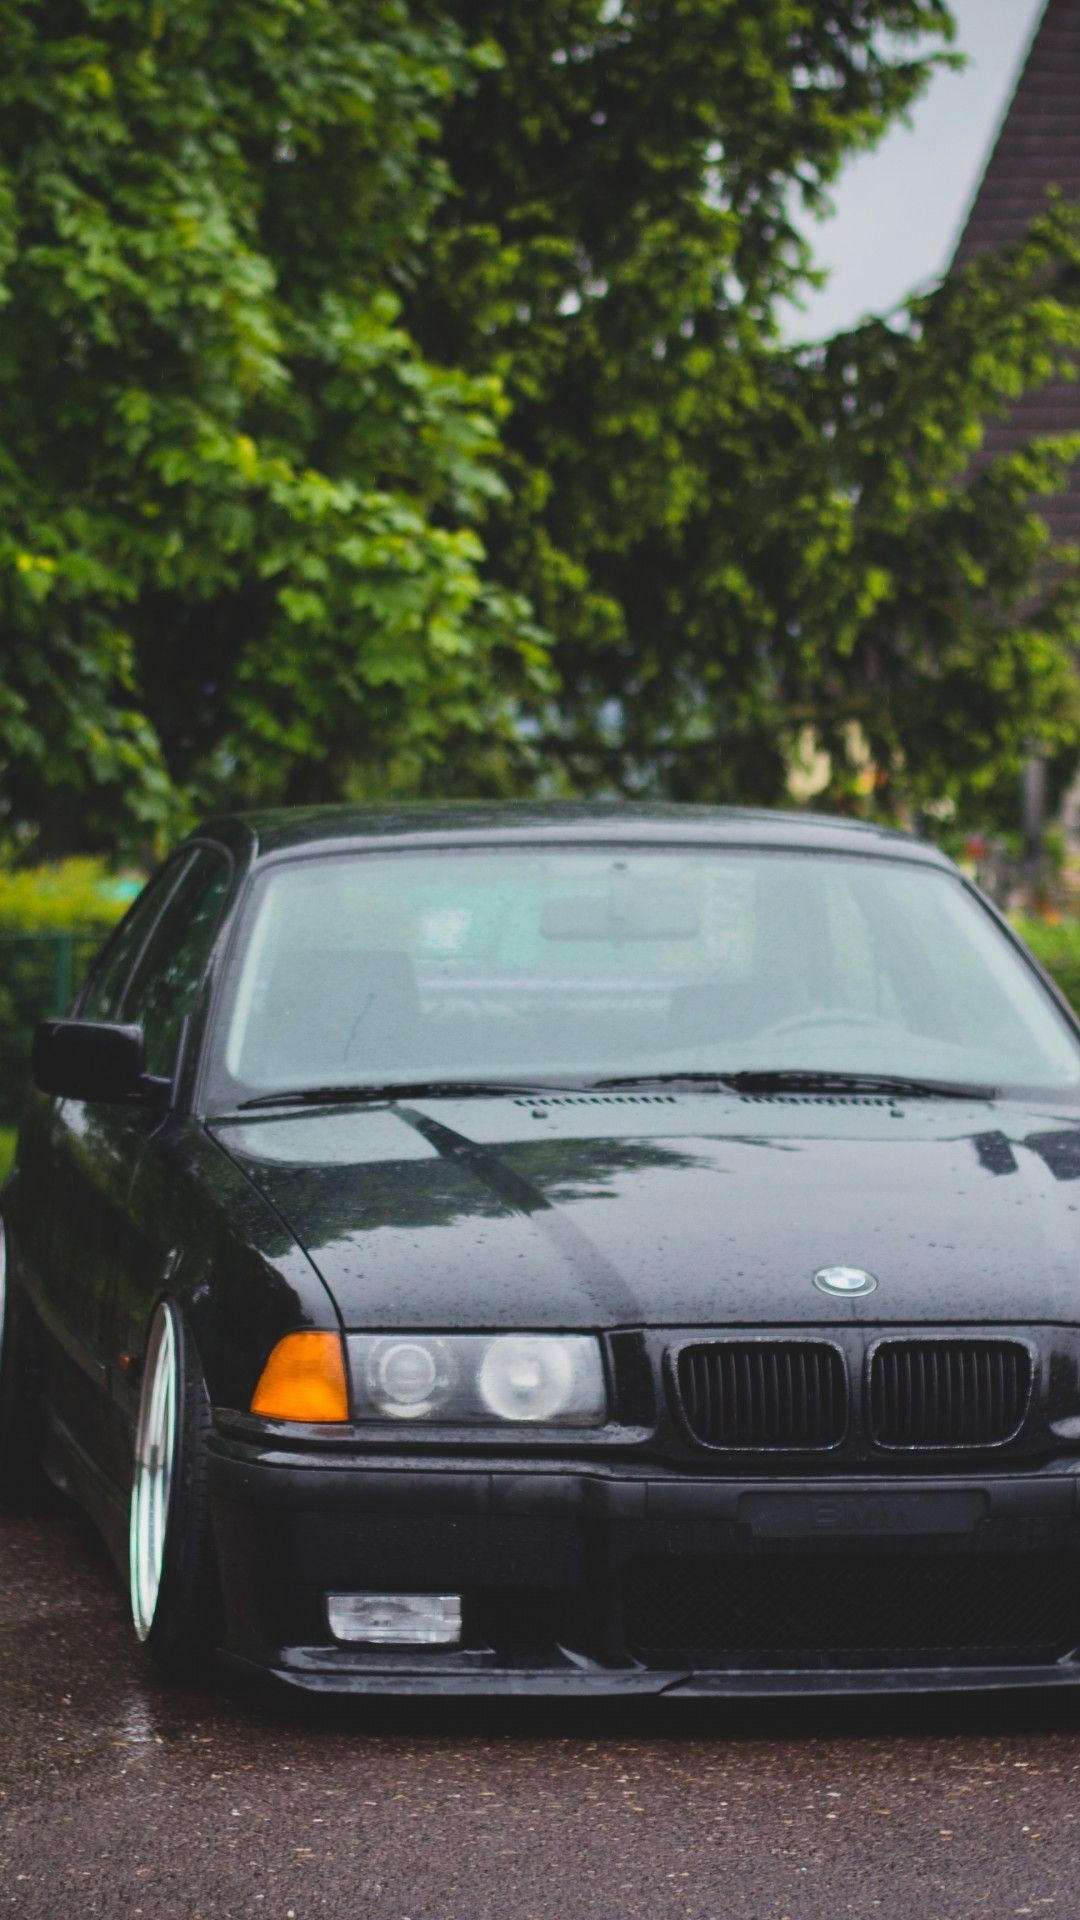 bmw e36 m3 wallpaper (64+ images)